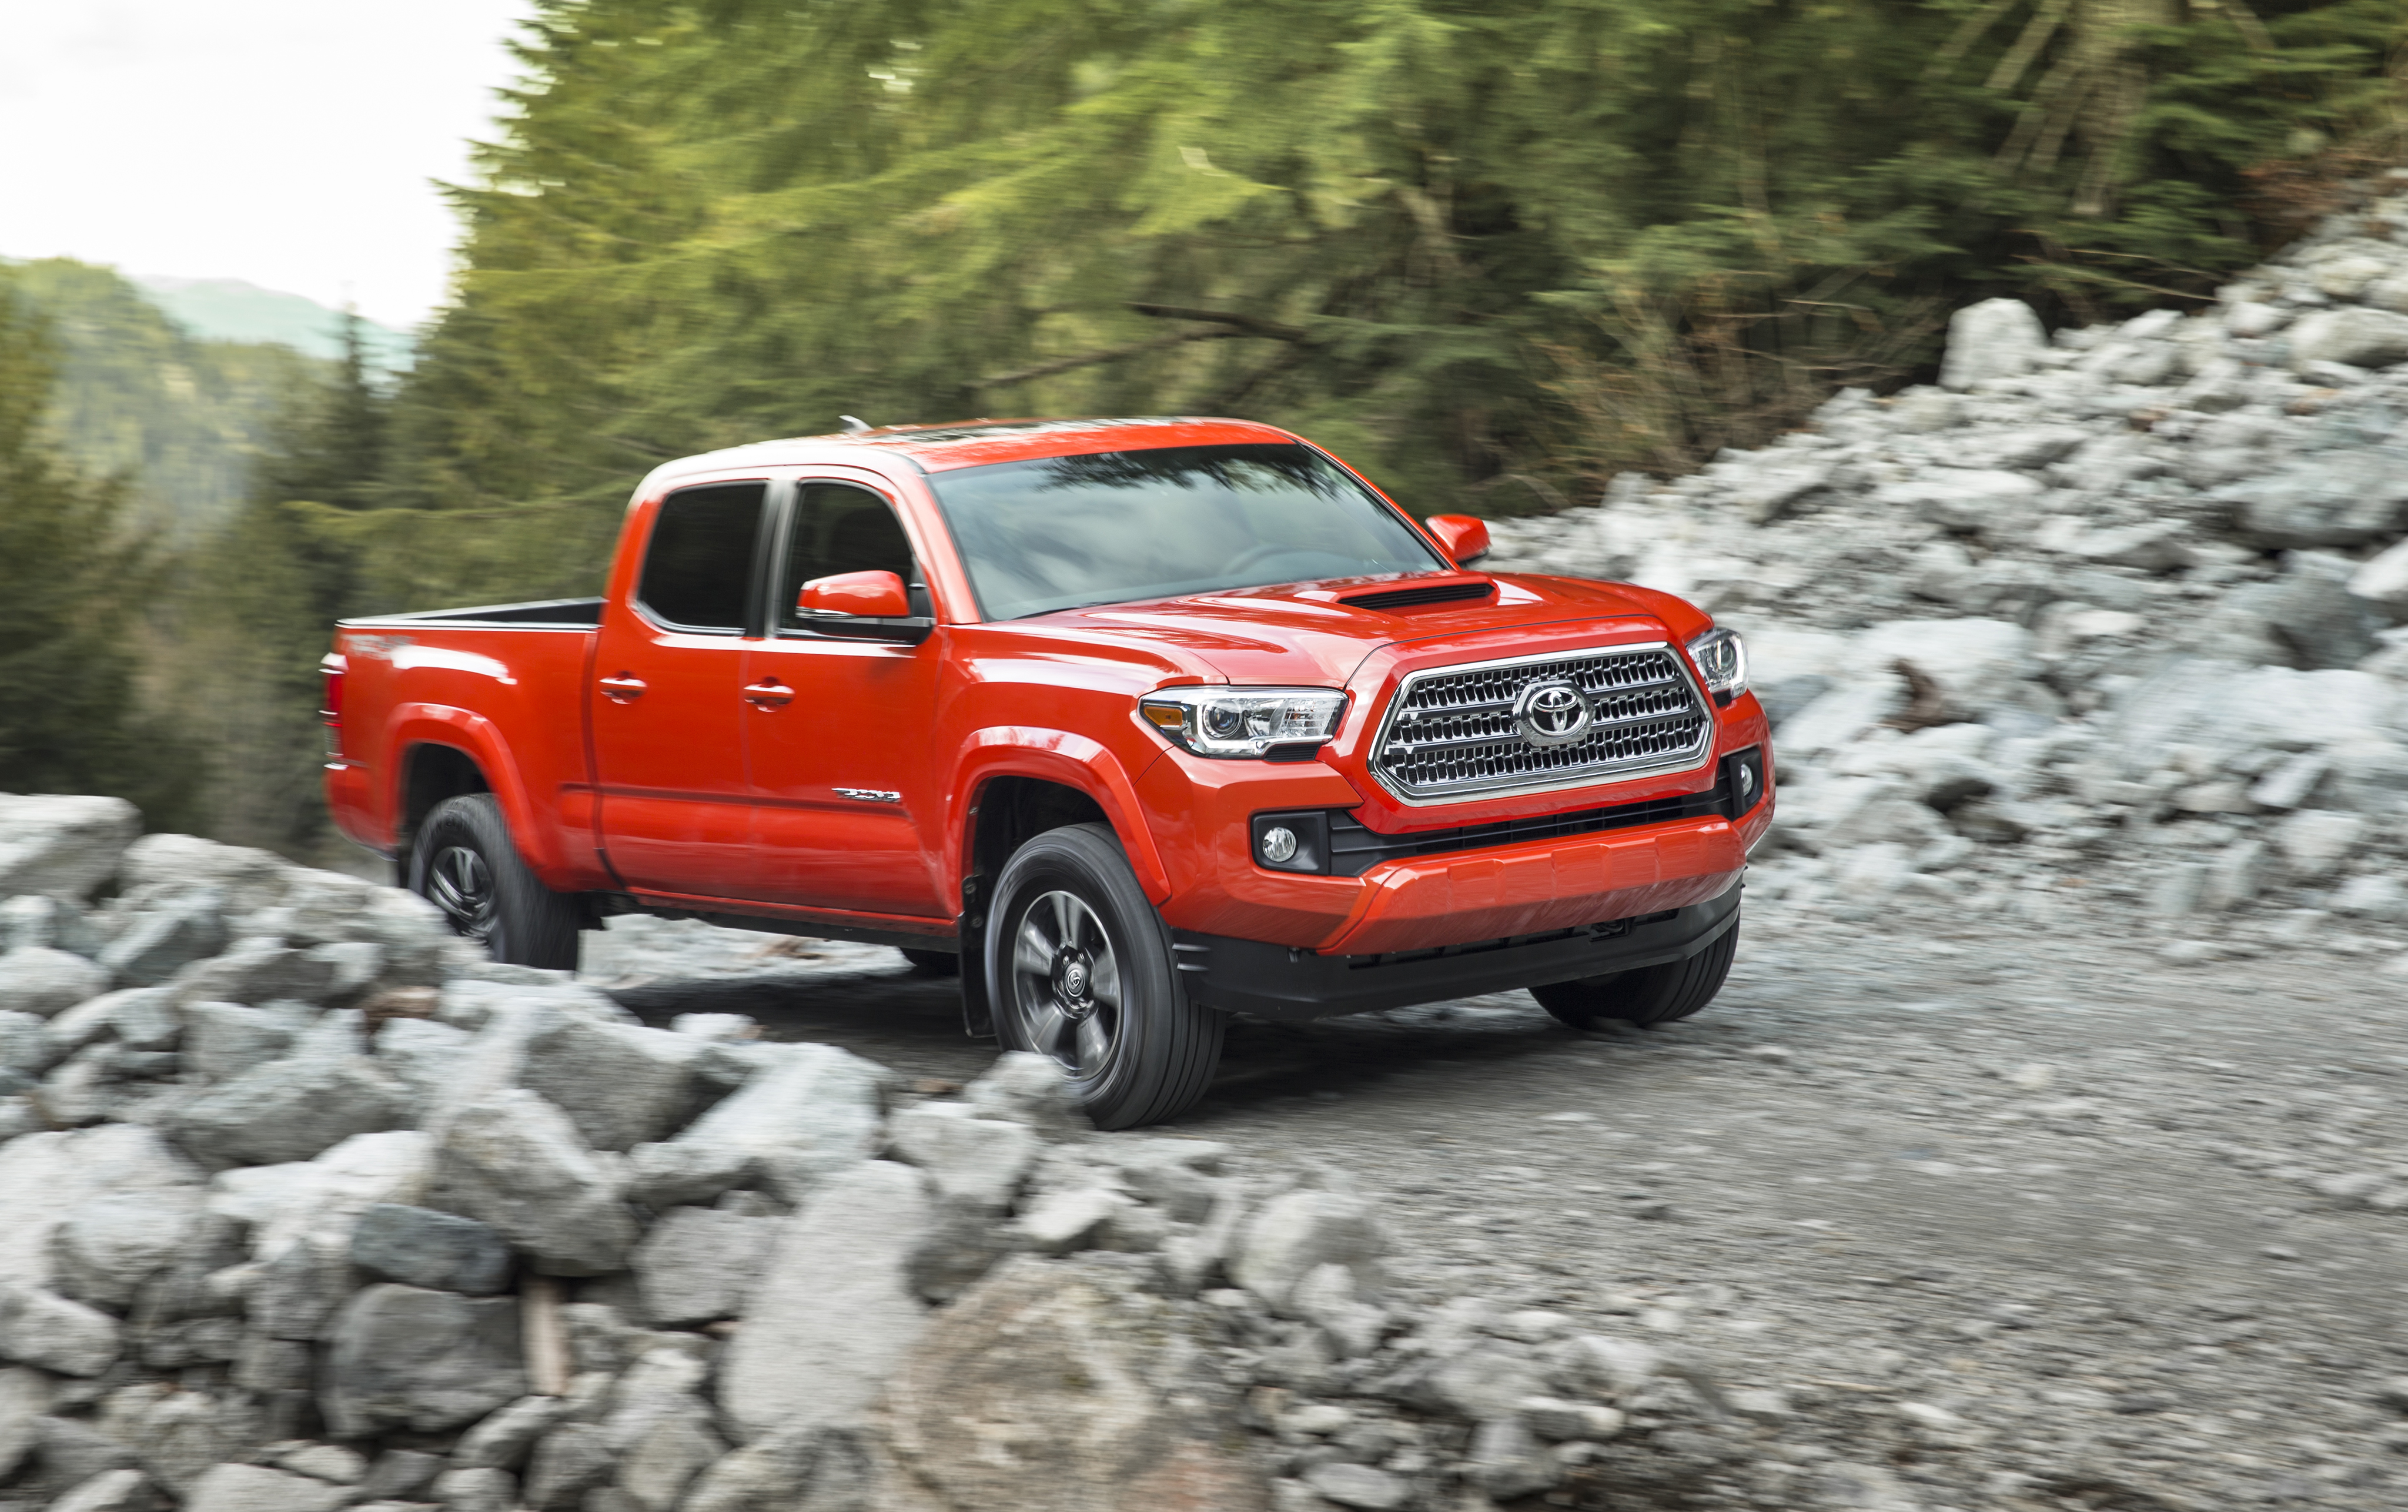 2016 Toyota Tacoma Trd Photo Wallpaper   HD Wallpaper 4096x2572